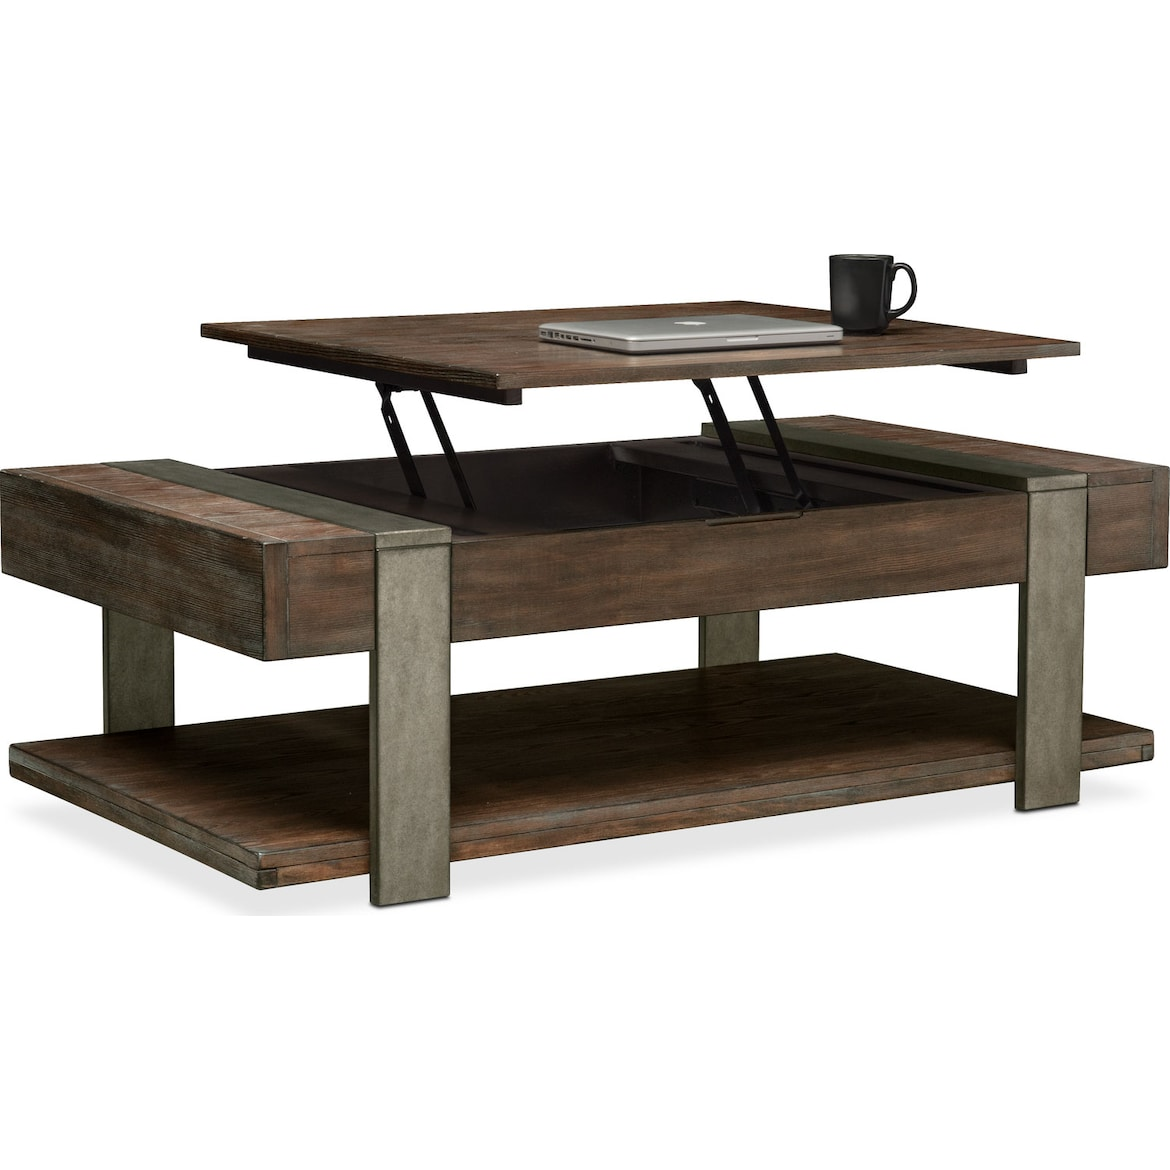 American Signature Furniture Salary: Union City Lift Top Coffee Table